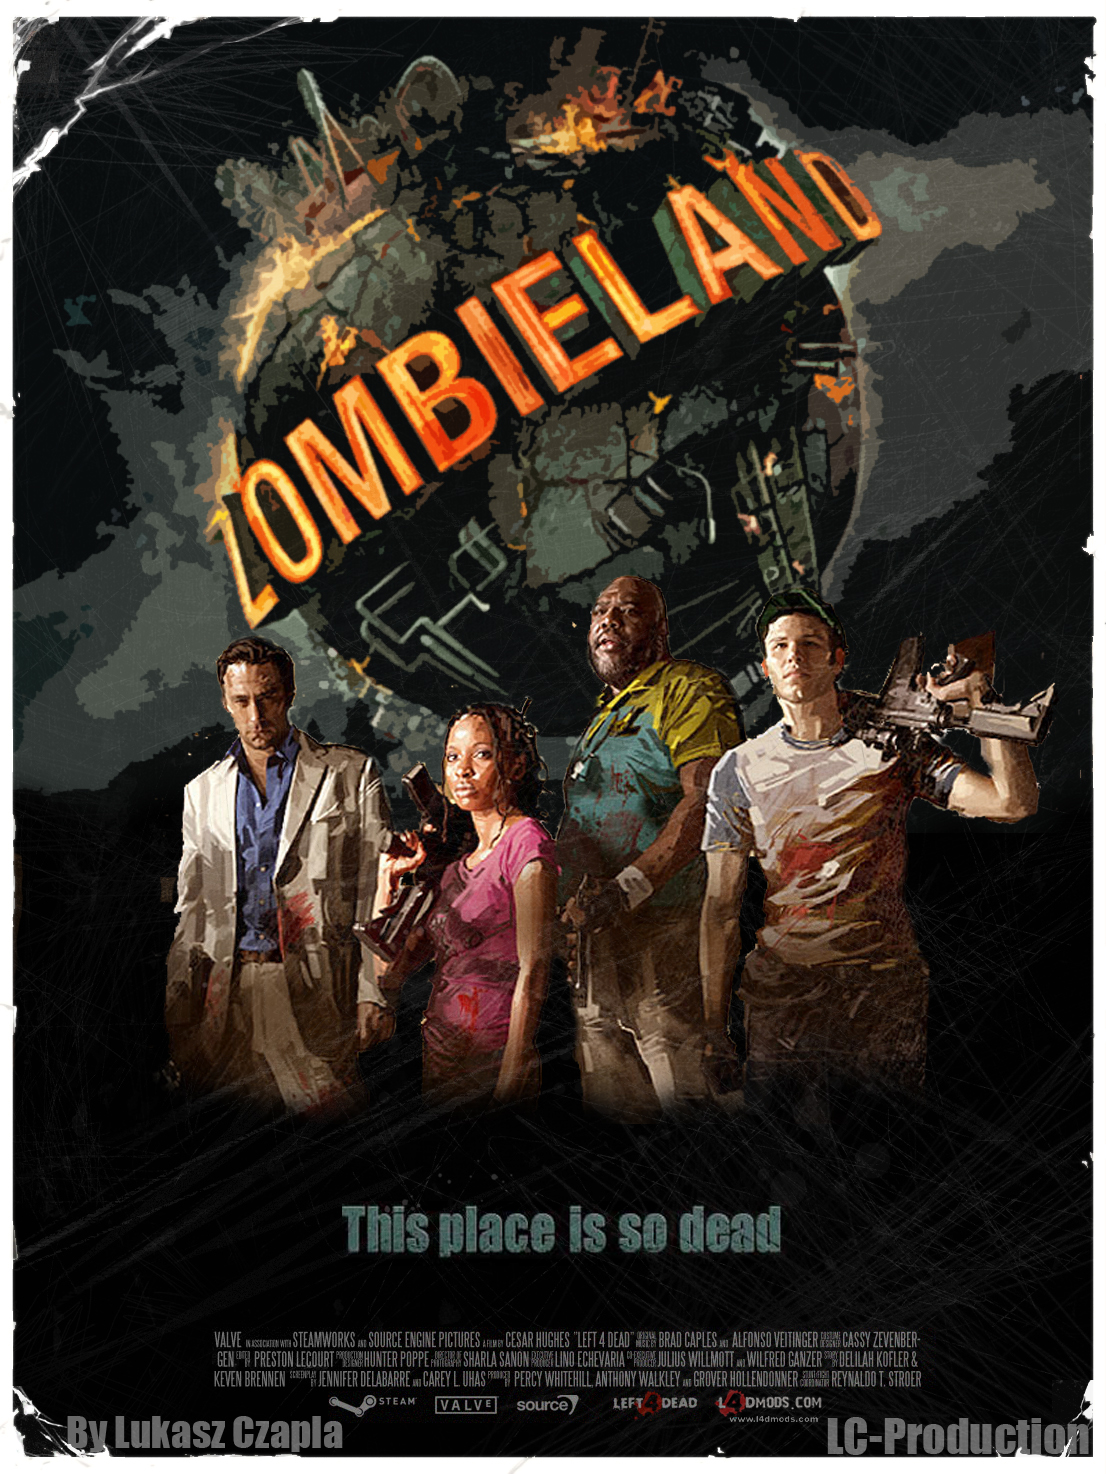 Left 4 dead 2 zombies game